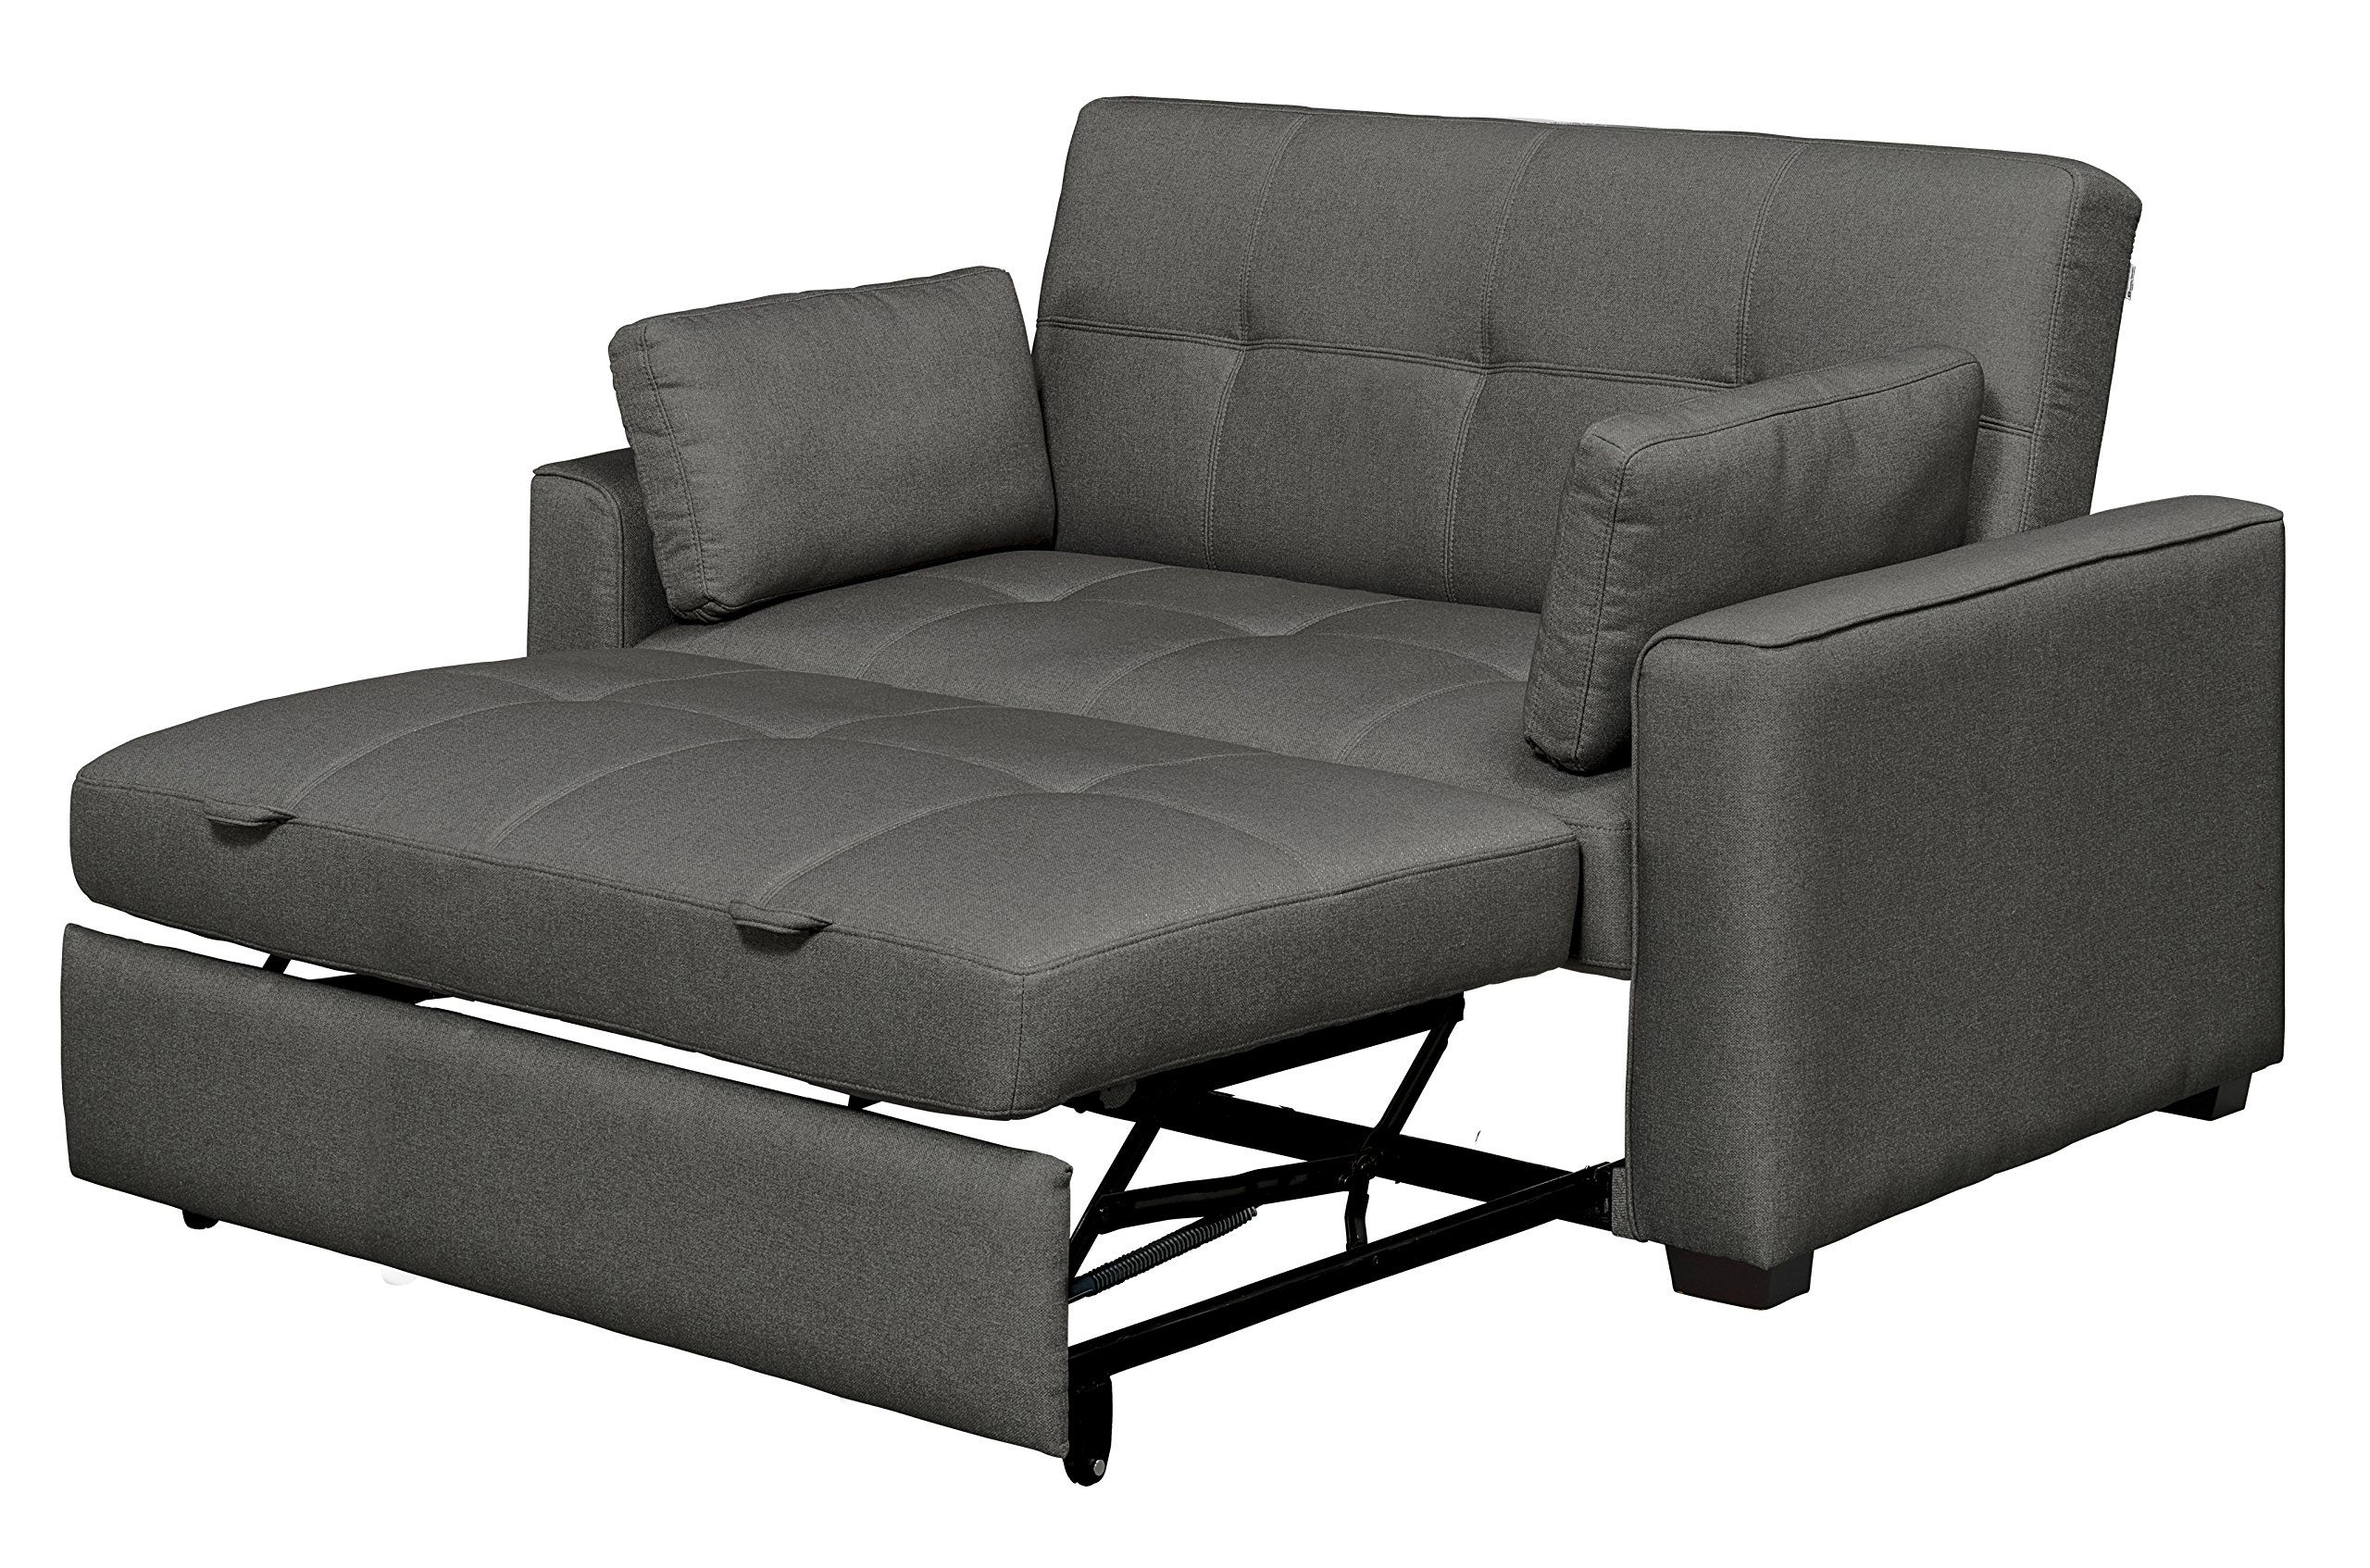 Mechali Products Furniture Serta Sofa Sleeper Convertible Into Lounger Love Seat Bed Twin Full An Queen Size Sofa Small Room Sofa Sectional Sofa With Recliner